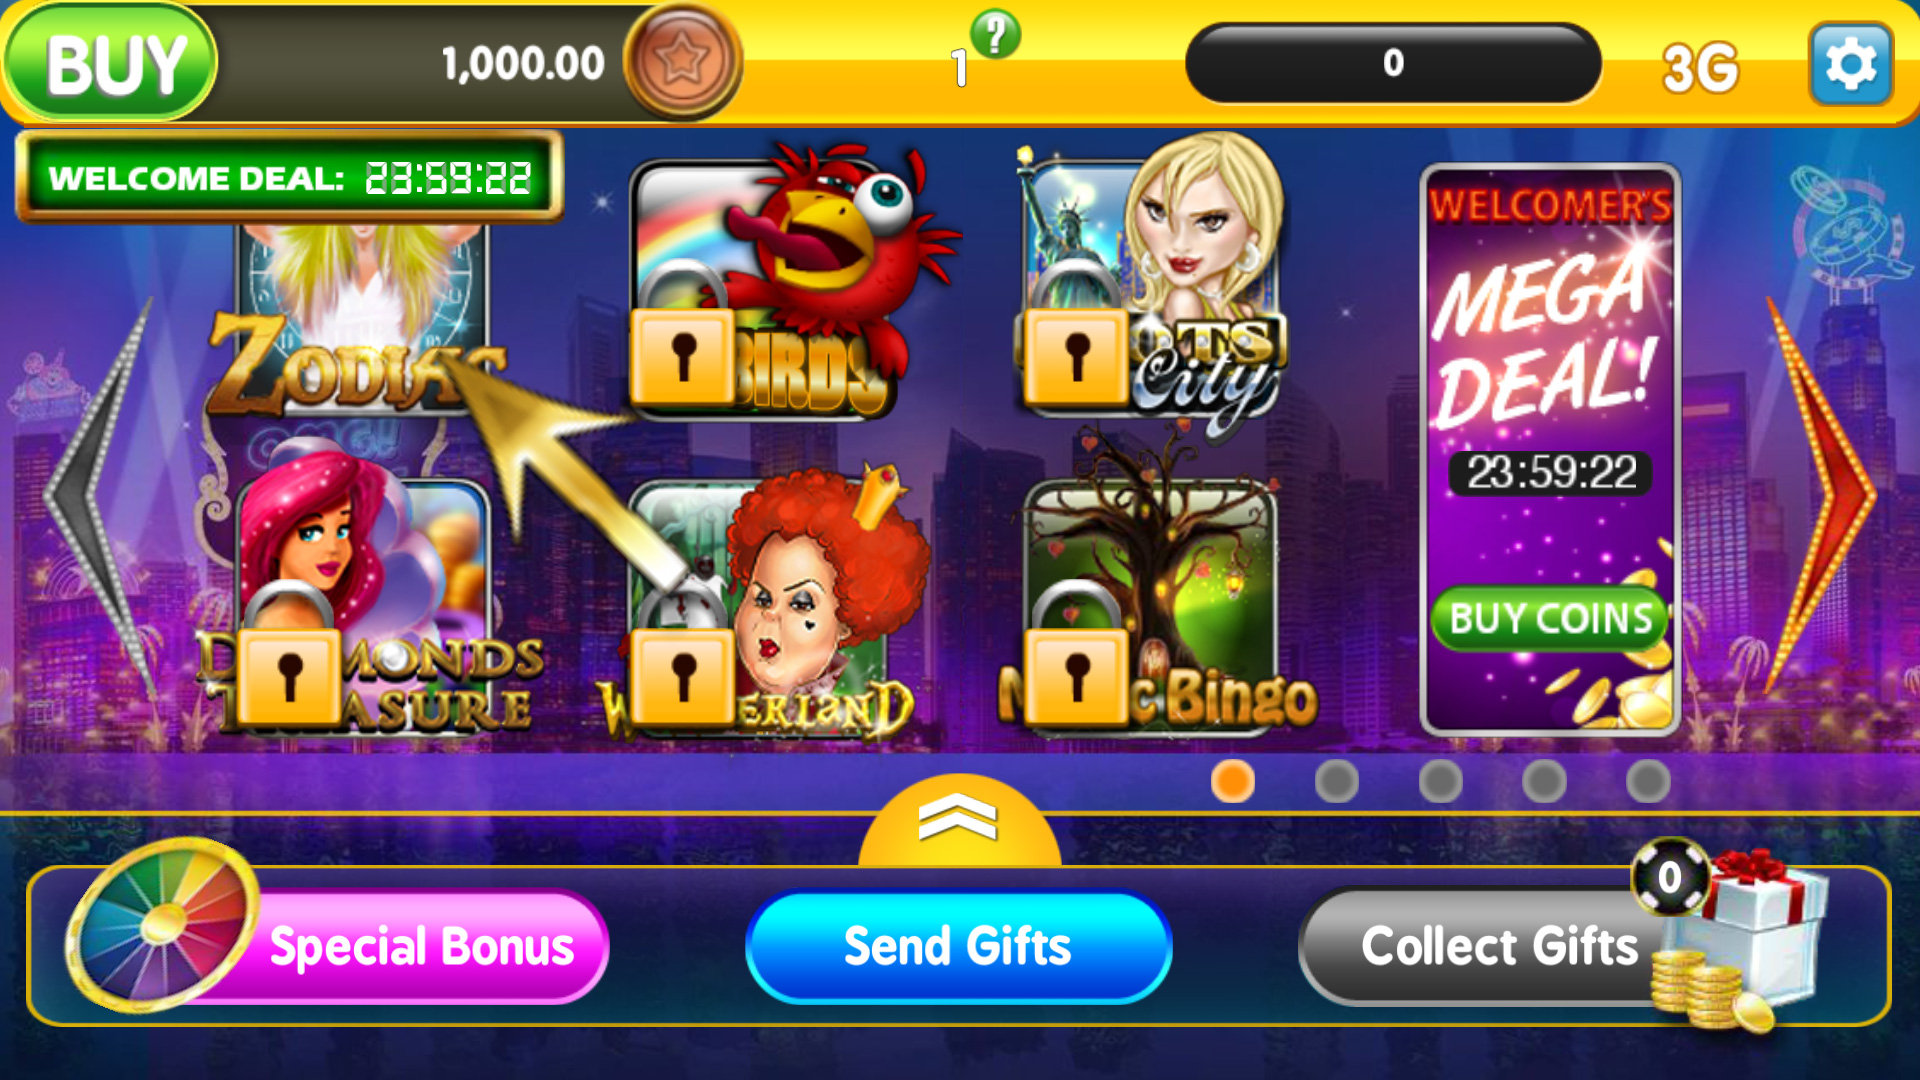 Real time casino games